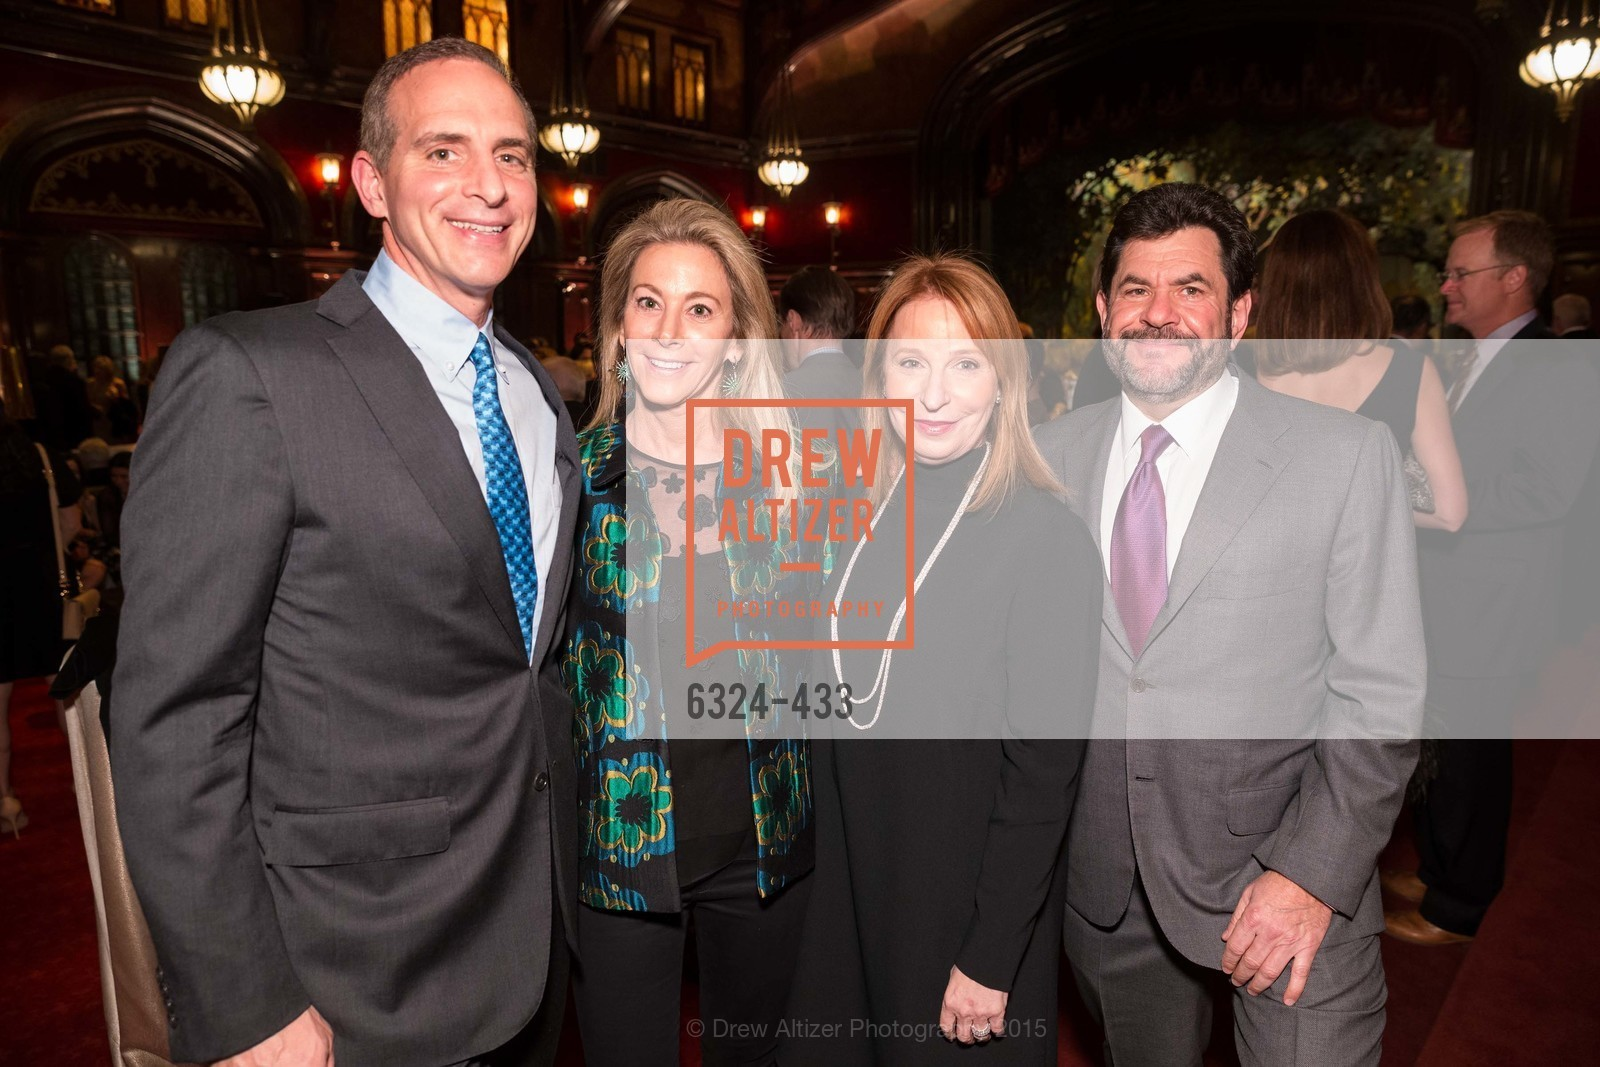 Jim Tananbaum, Dana Tananbaum, Lisa Pritzker, John Pritzker, SFMOMA Contemporary Vision Award, Regency Ballroom. 1300 Van Ness, November 3rd, 2015,Drew Altizer, Drew Altizer Photography, full-service event agency, private events, San Francisco photographer, photographer California